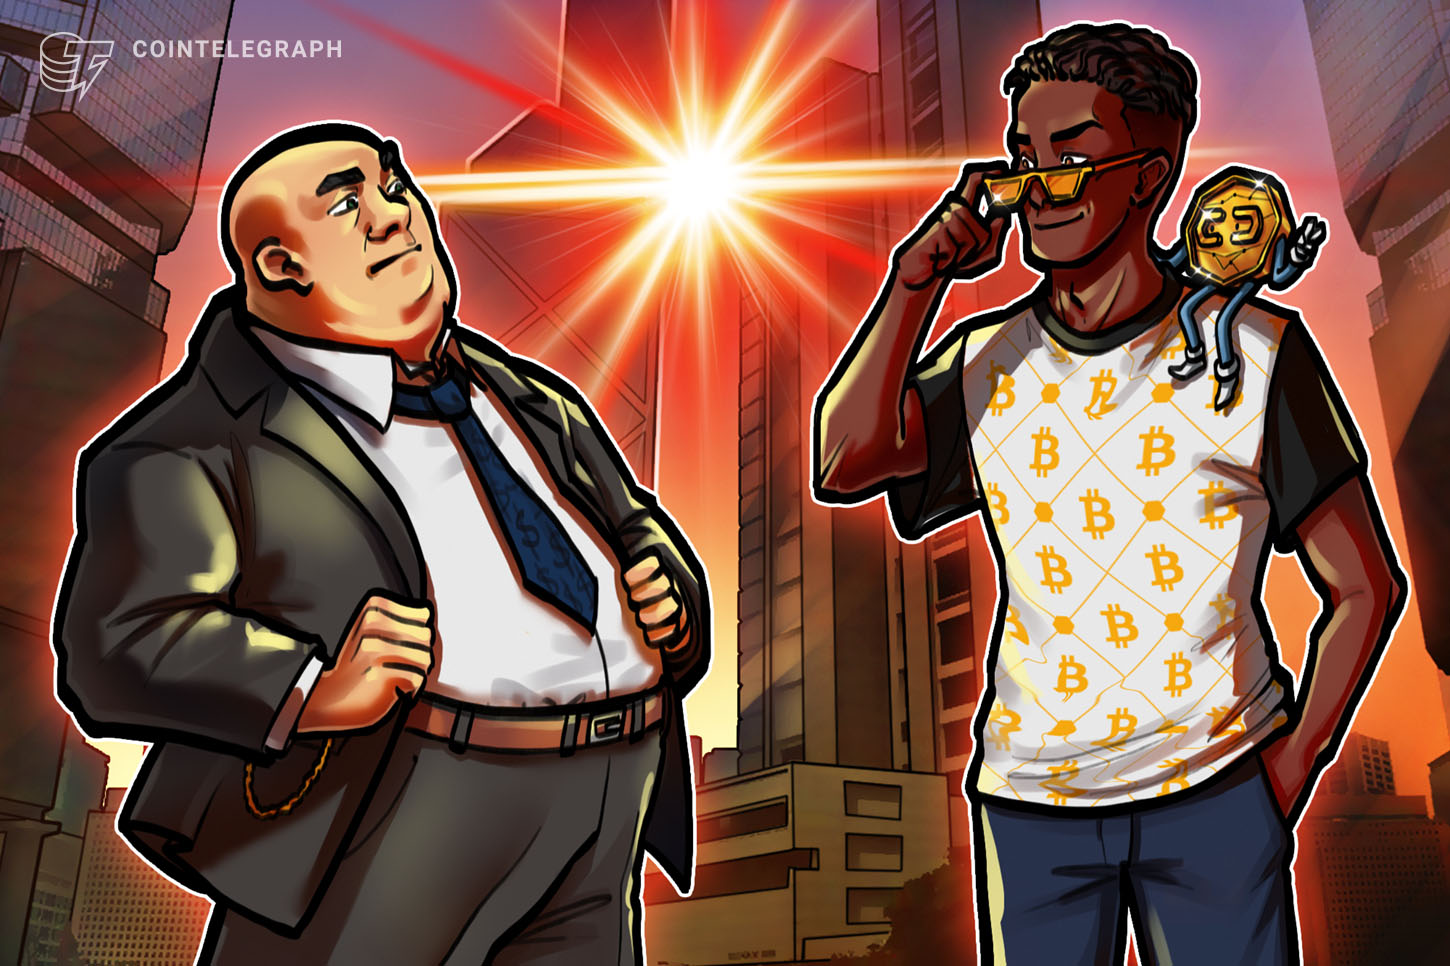 Decentralized and centralized finance need to collaborate